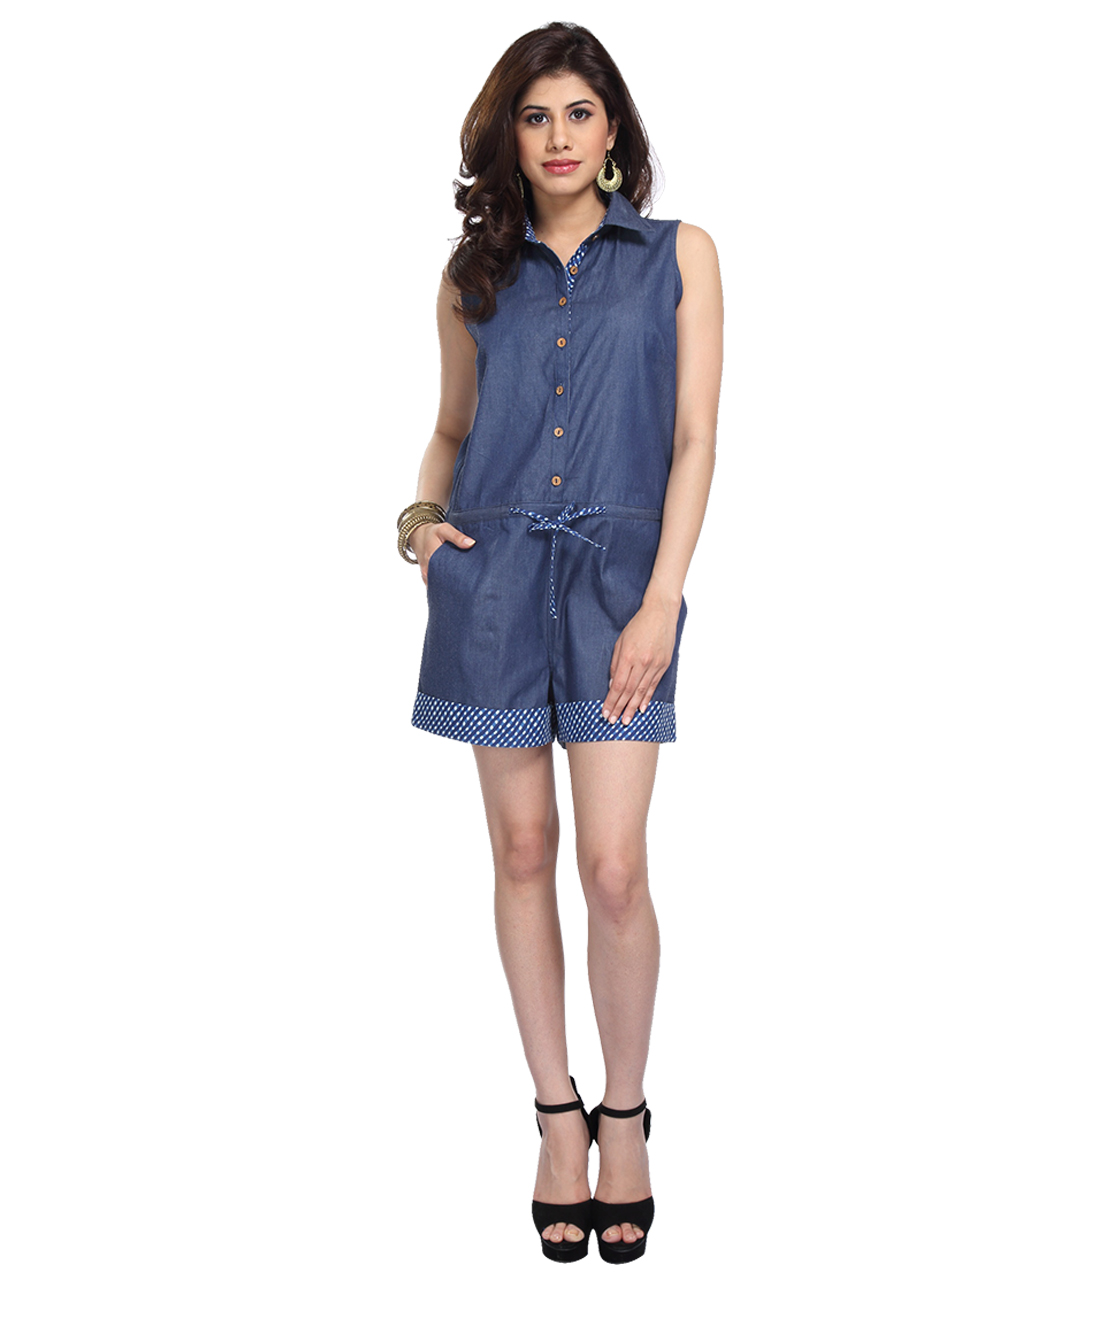 denim and cotton playsuit